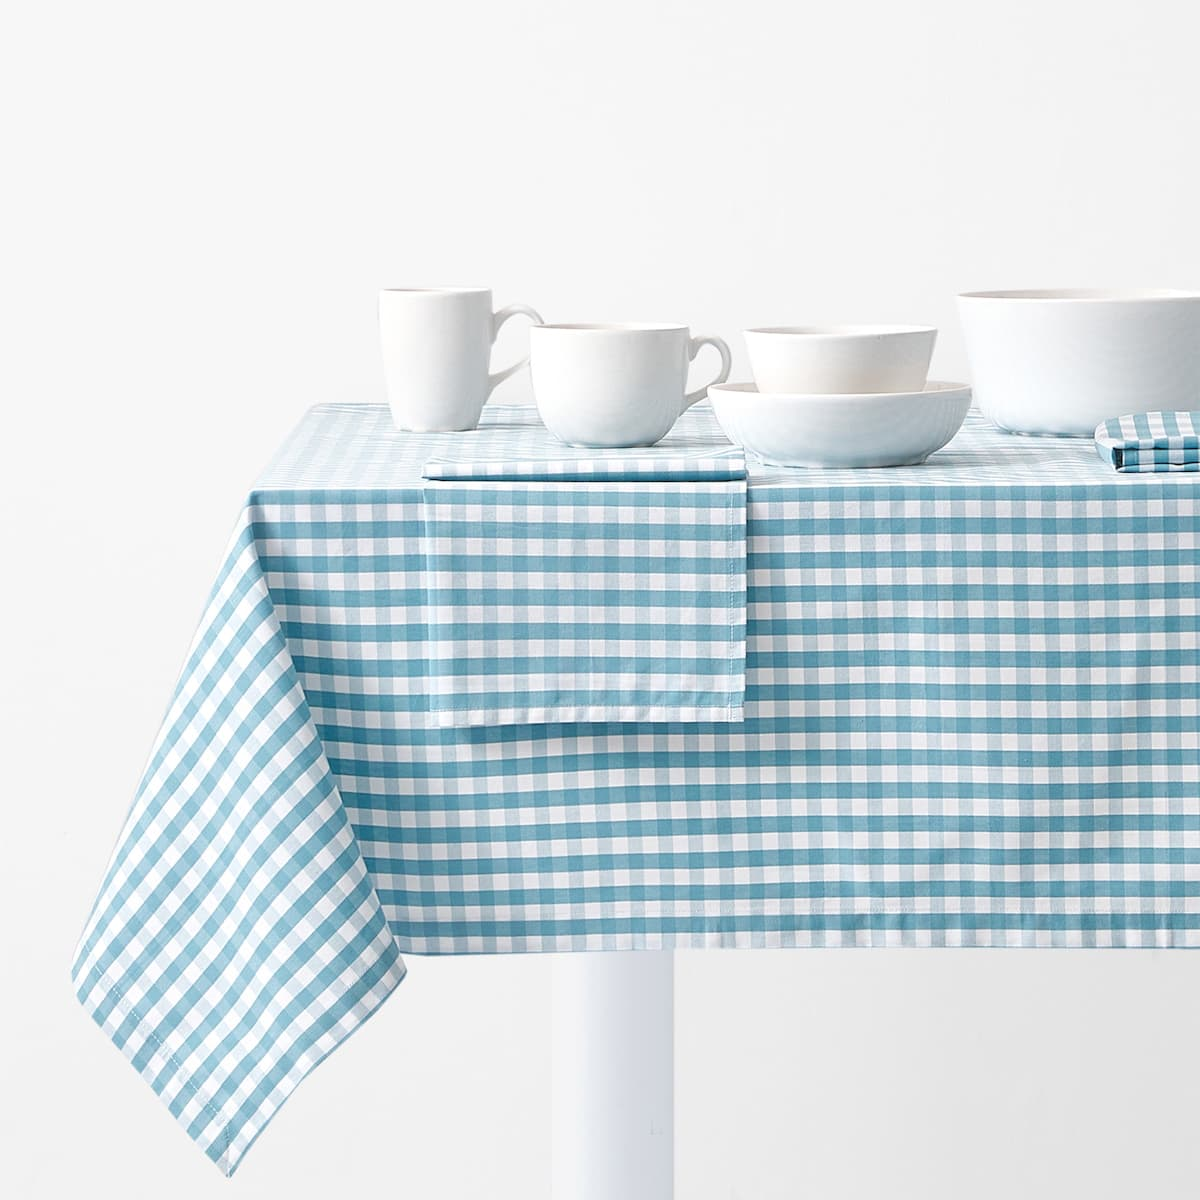 Delicieux + Image 1 Of The Product GINGHAM TABLECLOTH